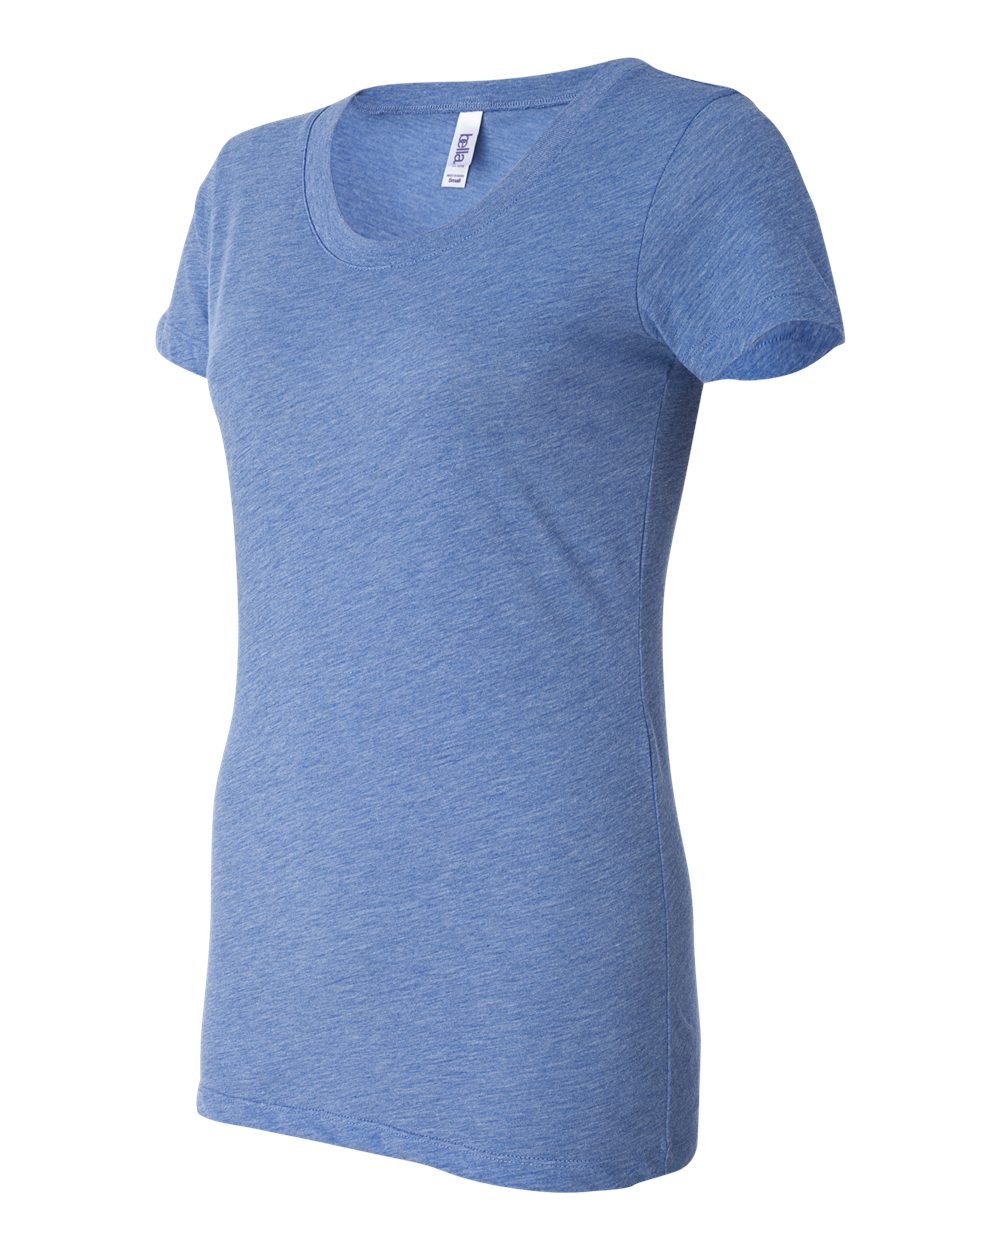 Bella-Canvas-Women-039-s-Triblend-Short-Sleeve-T-Shirt-B8413-S-2XL thumbnail 18